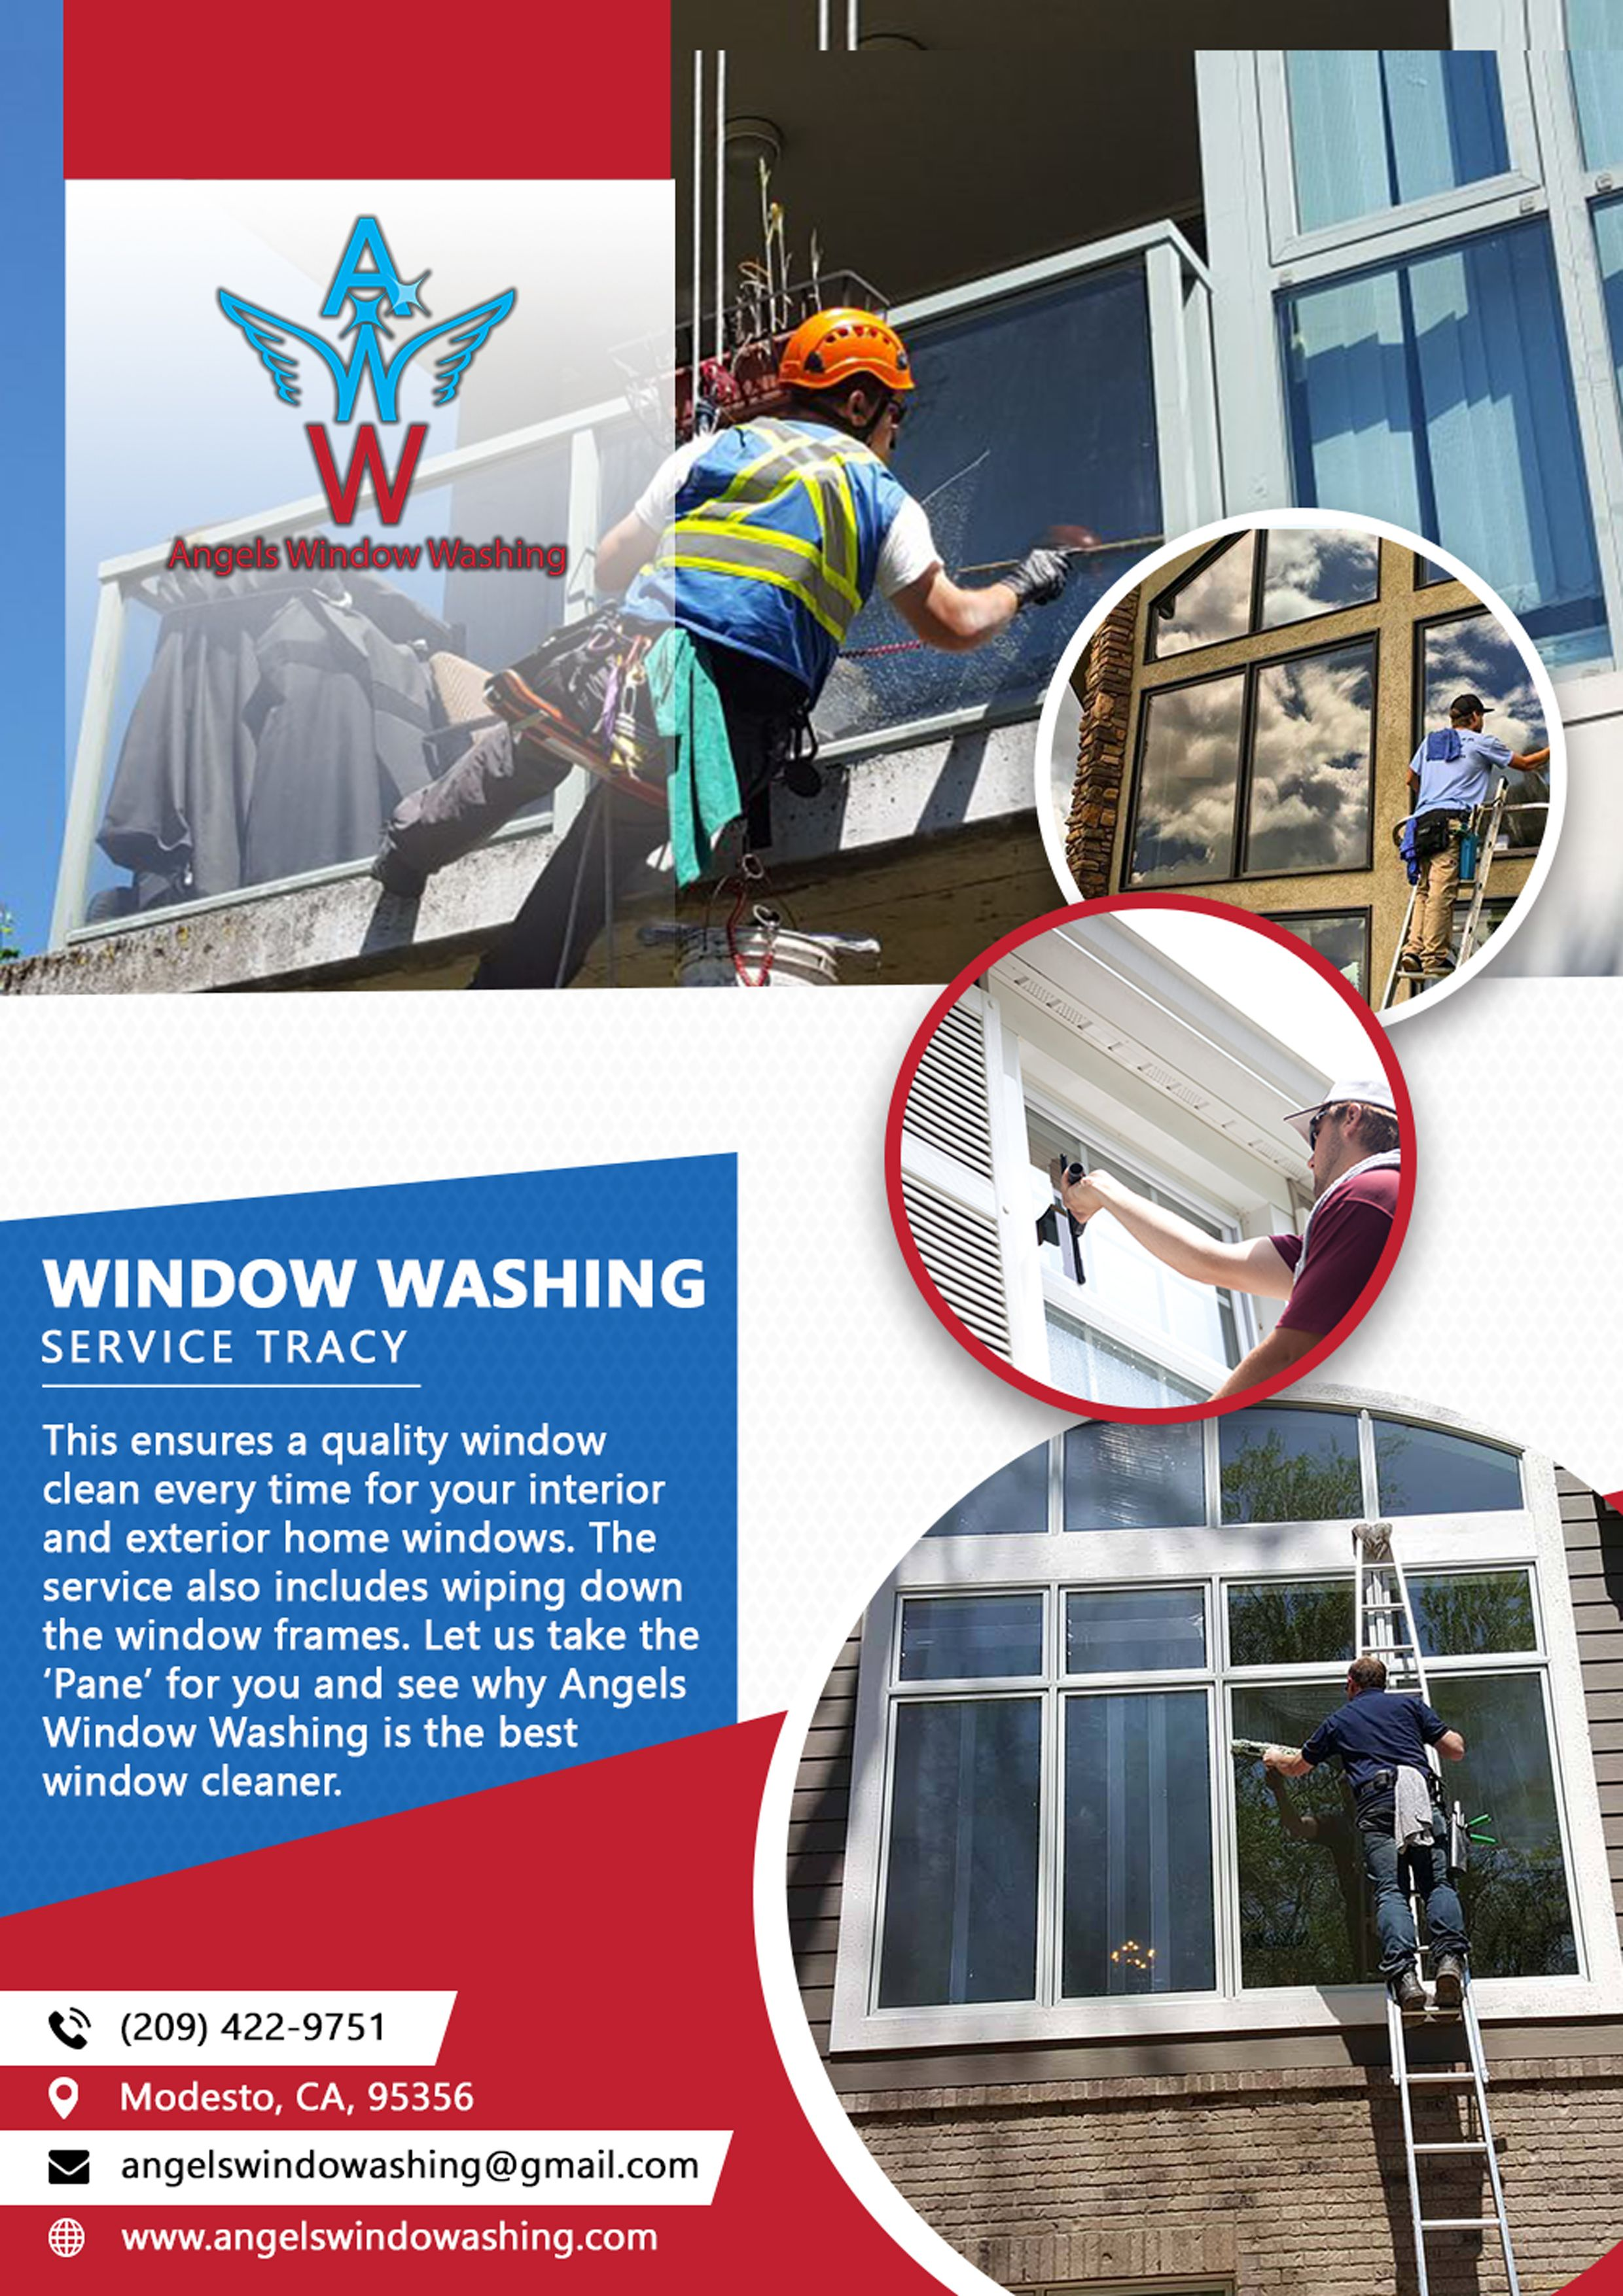 Window Washing Service Tracy Washing Windows Cleaning Gutters Window Cleaner